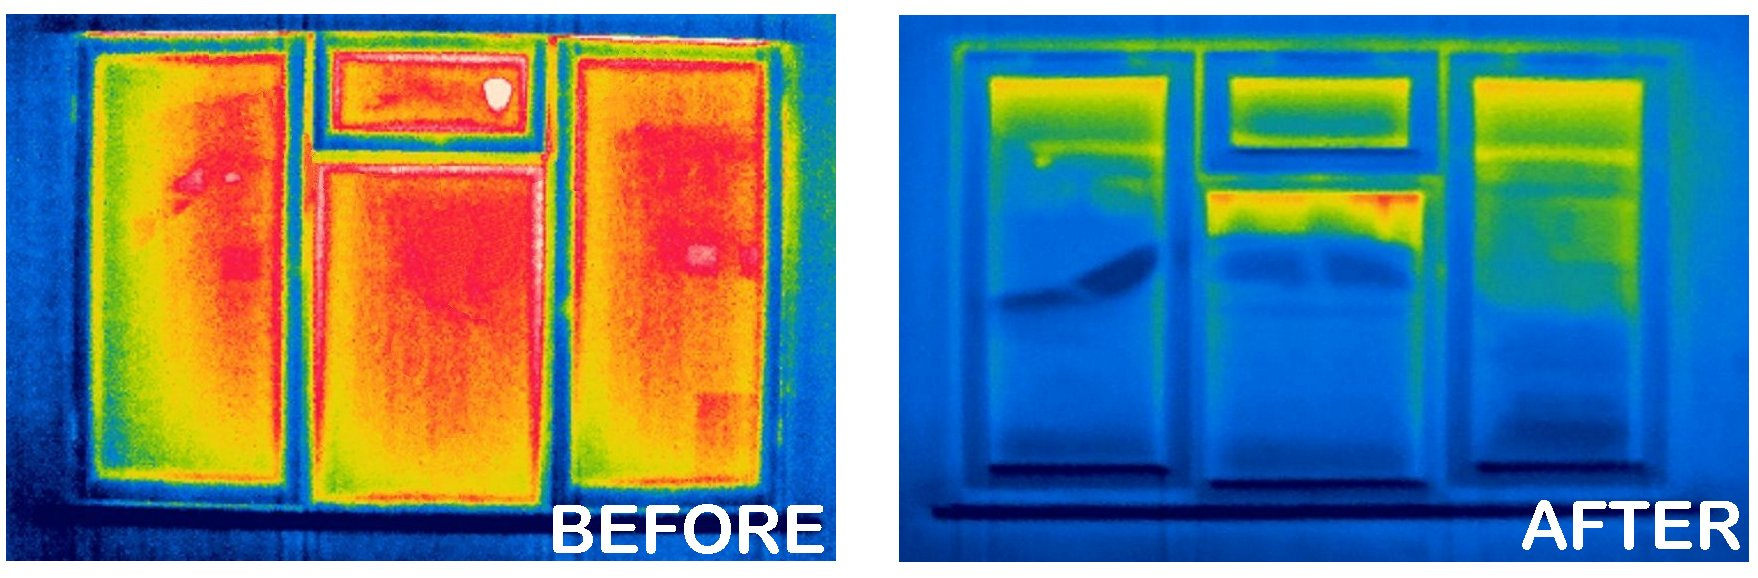 Energy Efficient Windows Before and After